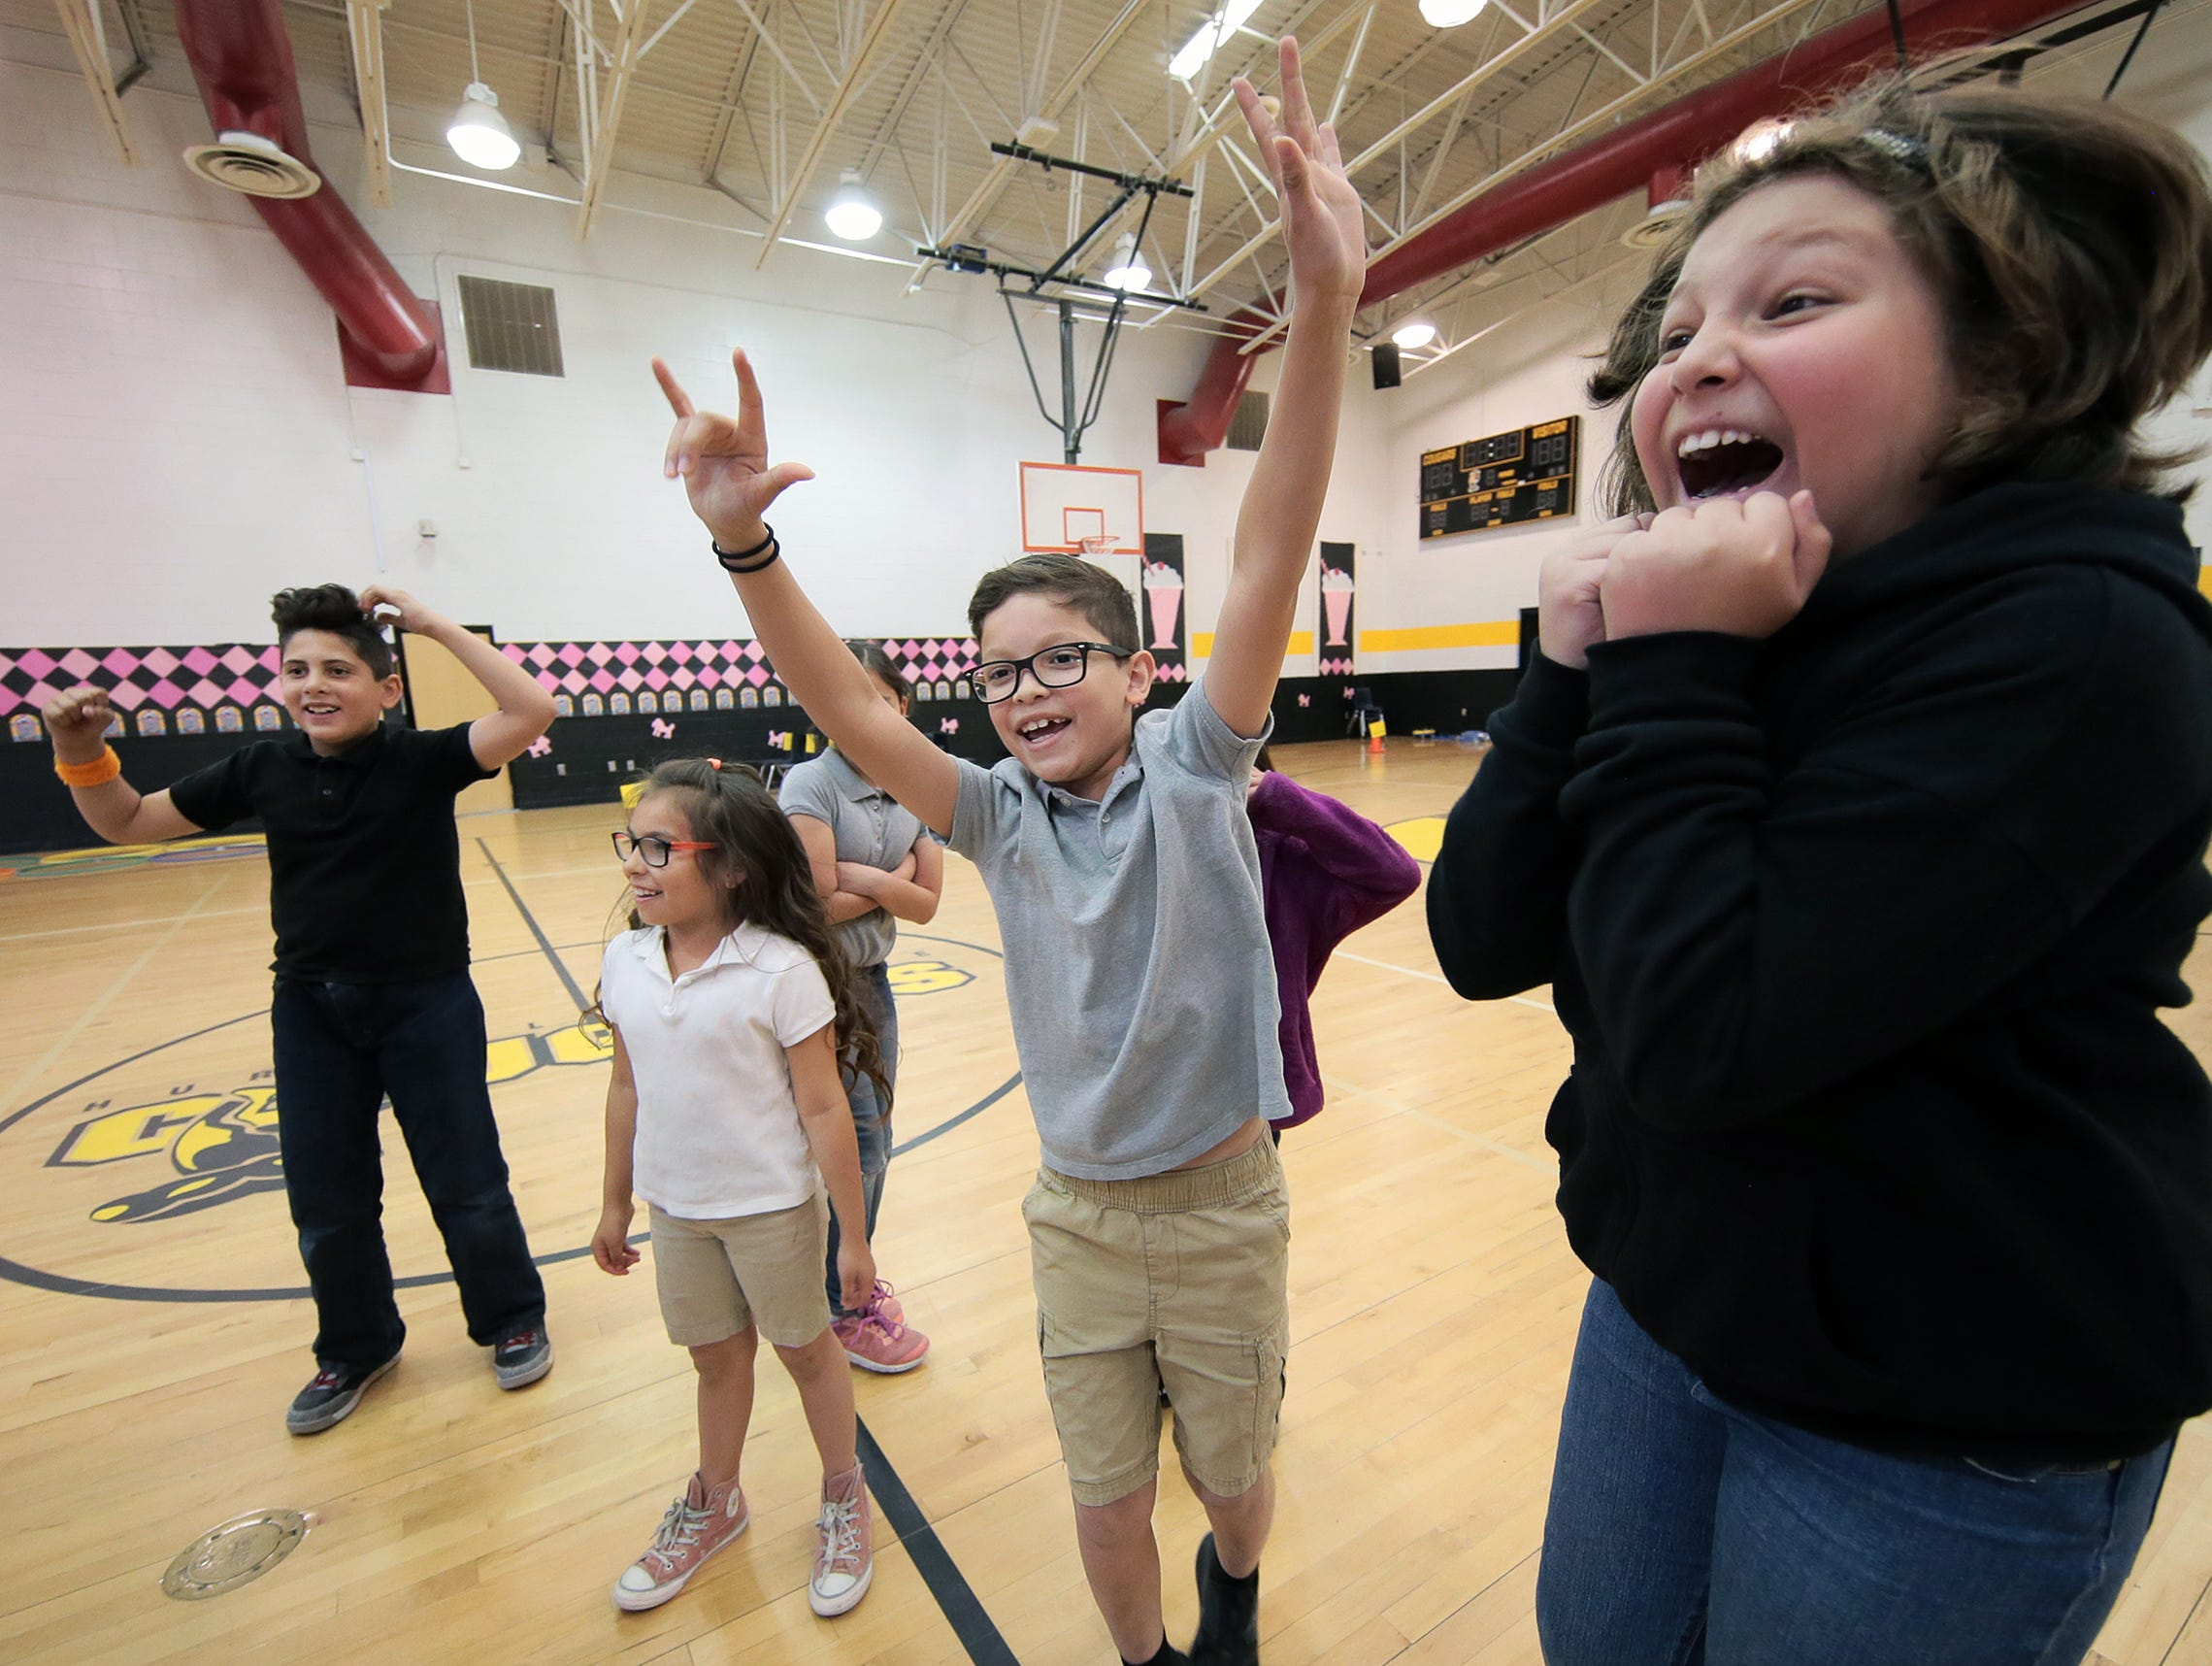 Fourth grade students celebrate after winning a math relay against fifth grade Friday during the STAAR Test rally. El Paso area schools are gearing up for the second round of STAAR testing with fun activities to relieve the stress of the standarized test.